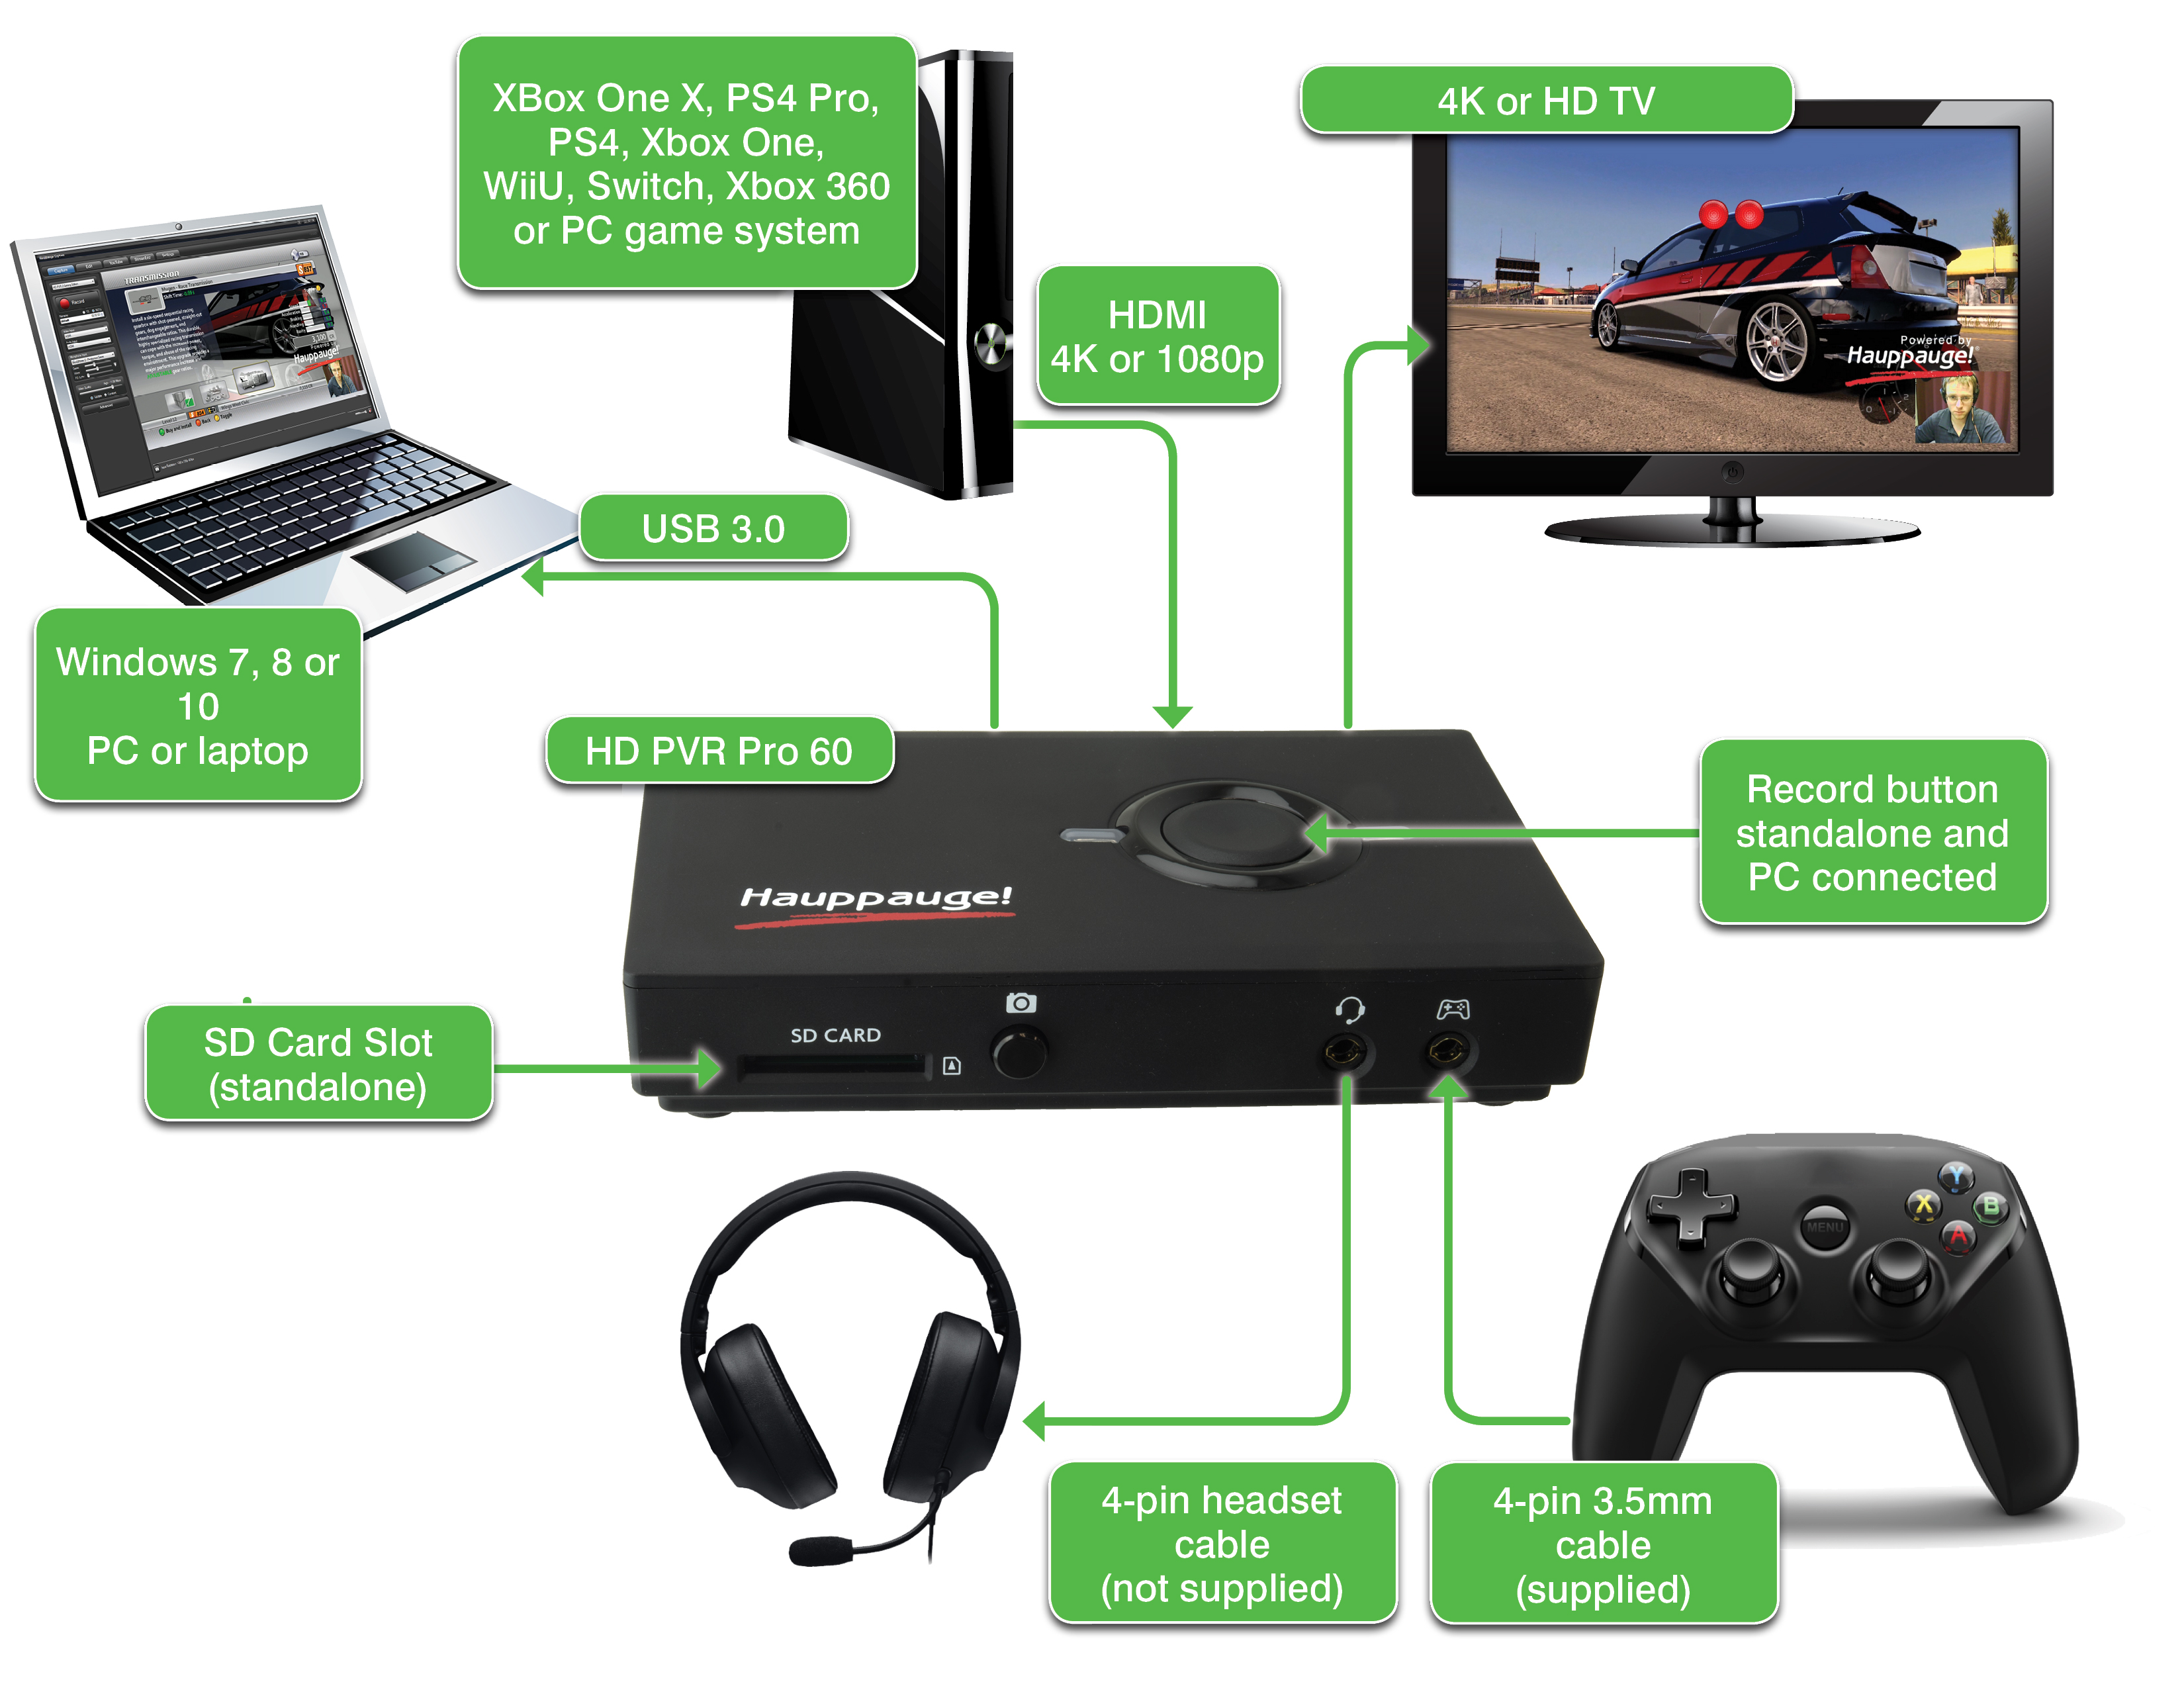 HD PVR Pro 60 connection diagram